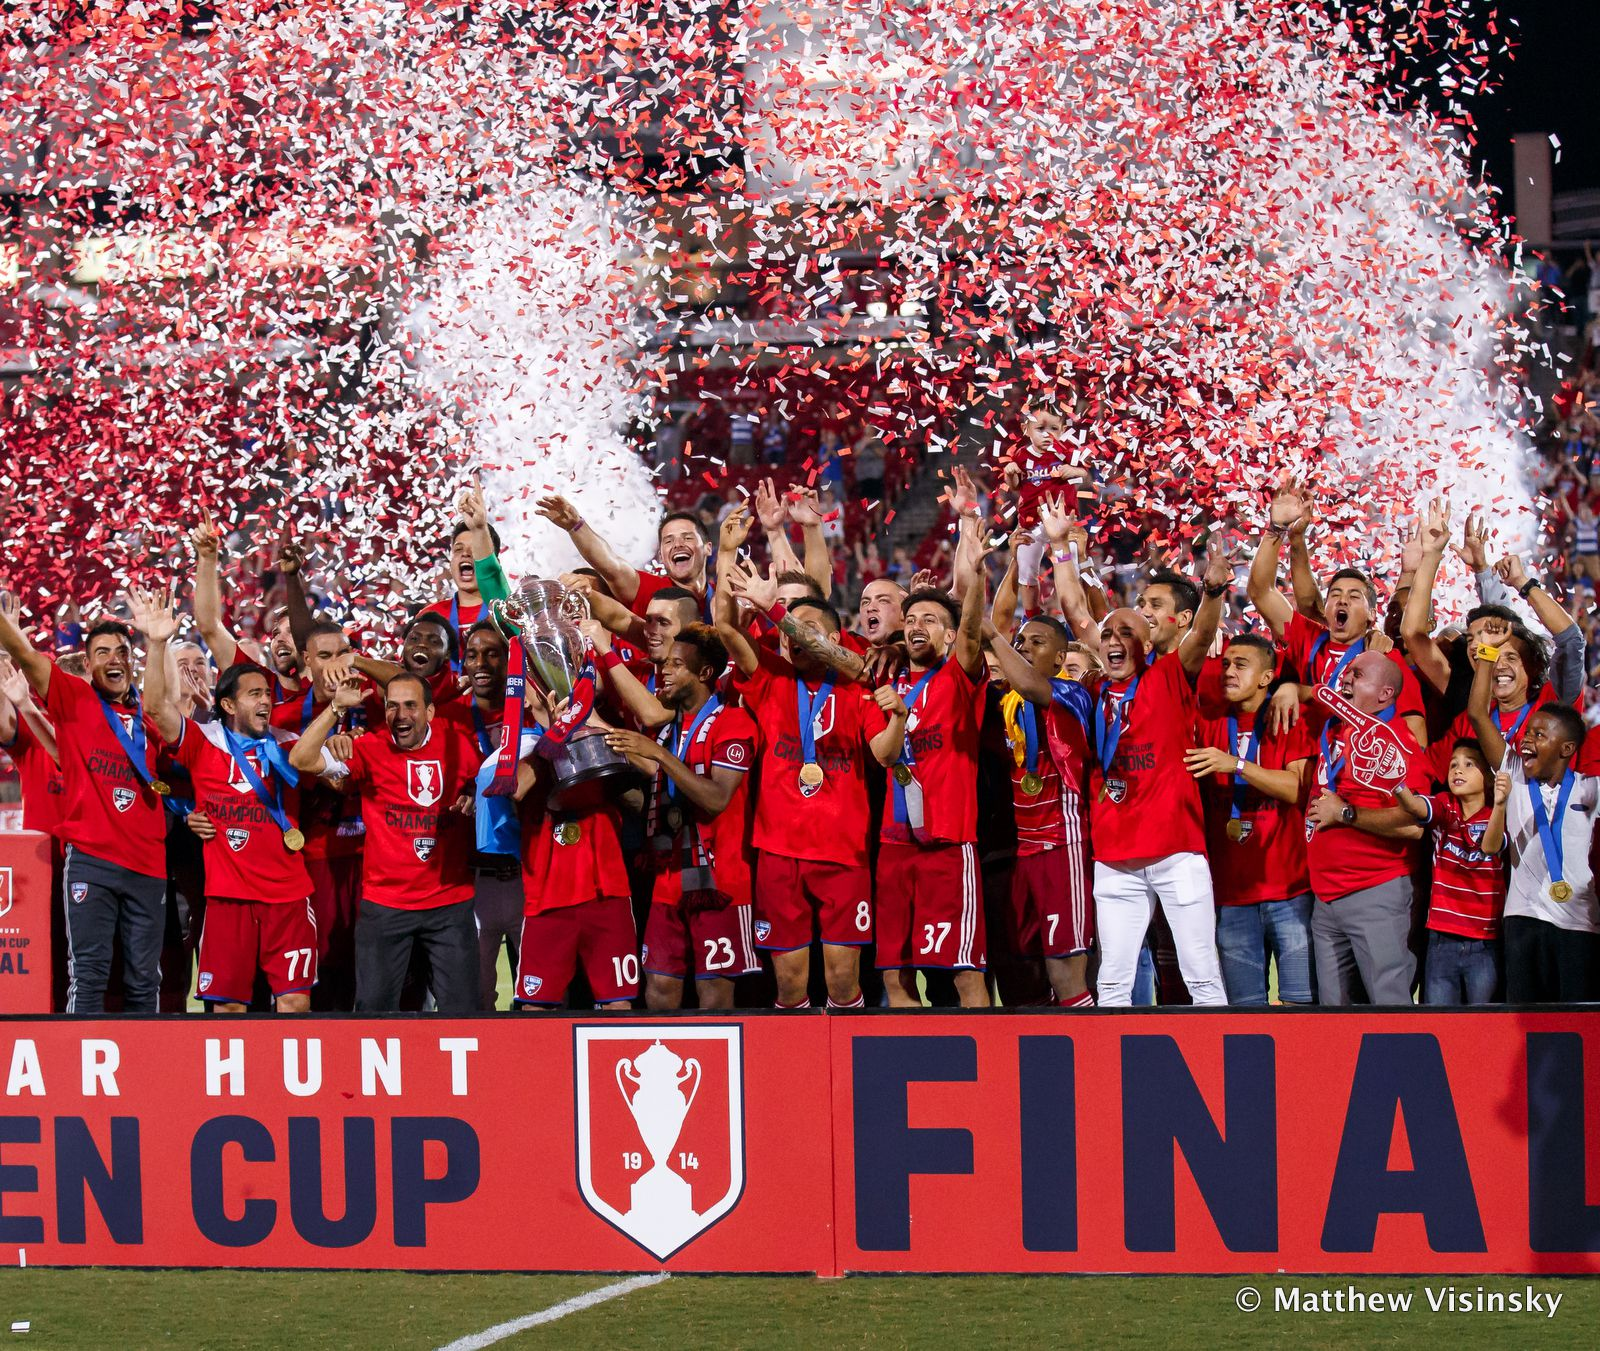 FC Dallas celebrates winning the 2016 Lamar Hunt US Open Cup, the club's first title in 19 seasons.